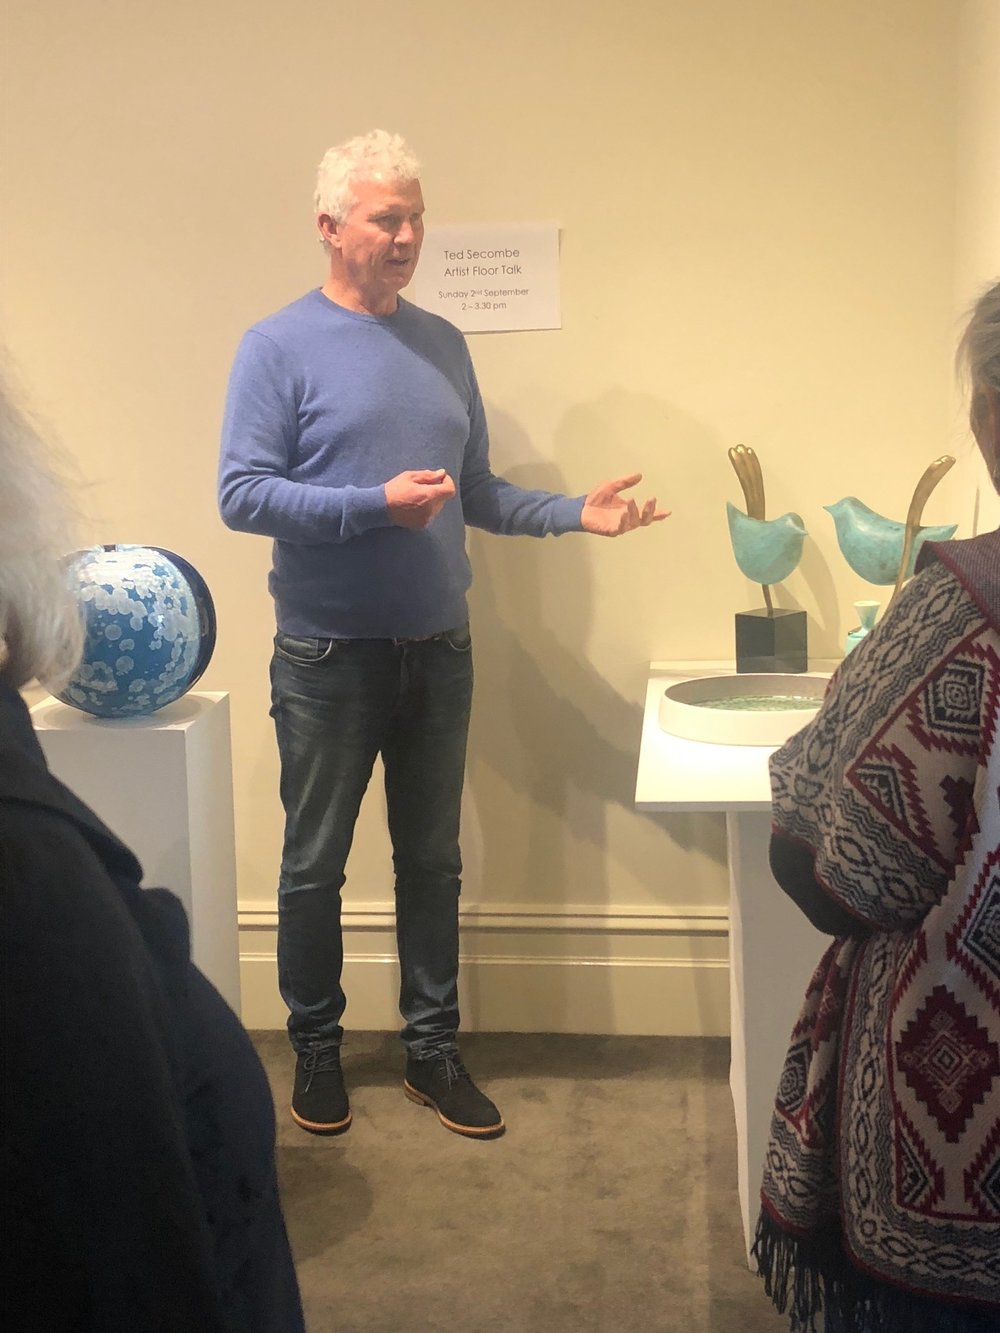 Ted Secombe, Exhibition Floor Talk, Skepsi @ Malvern Artists' Society Gallery